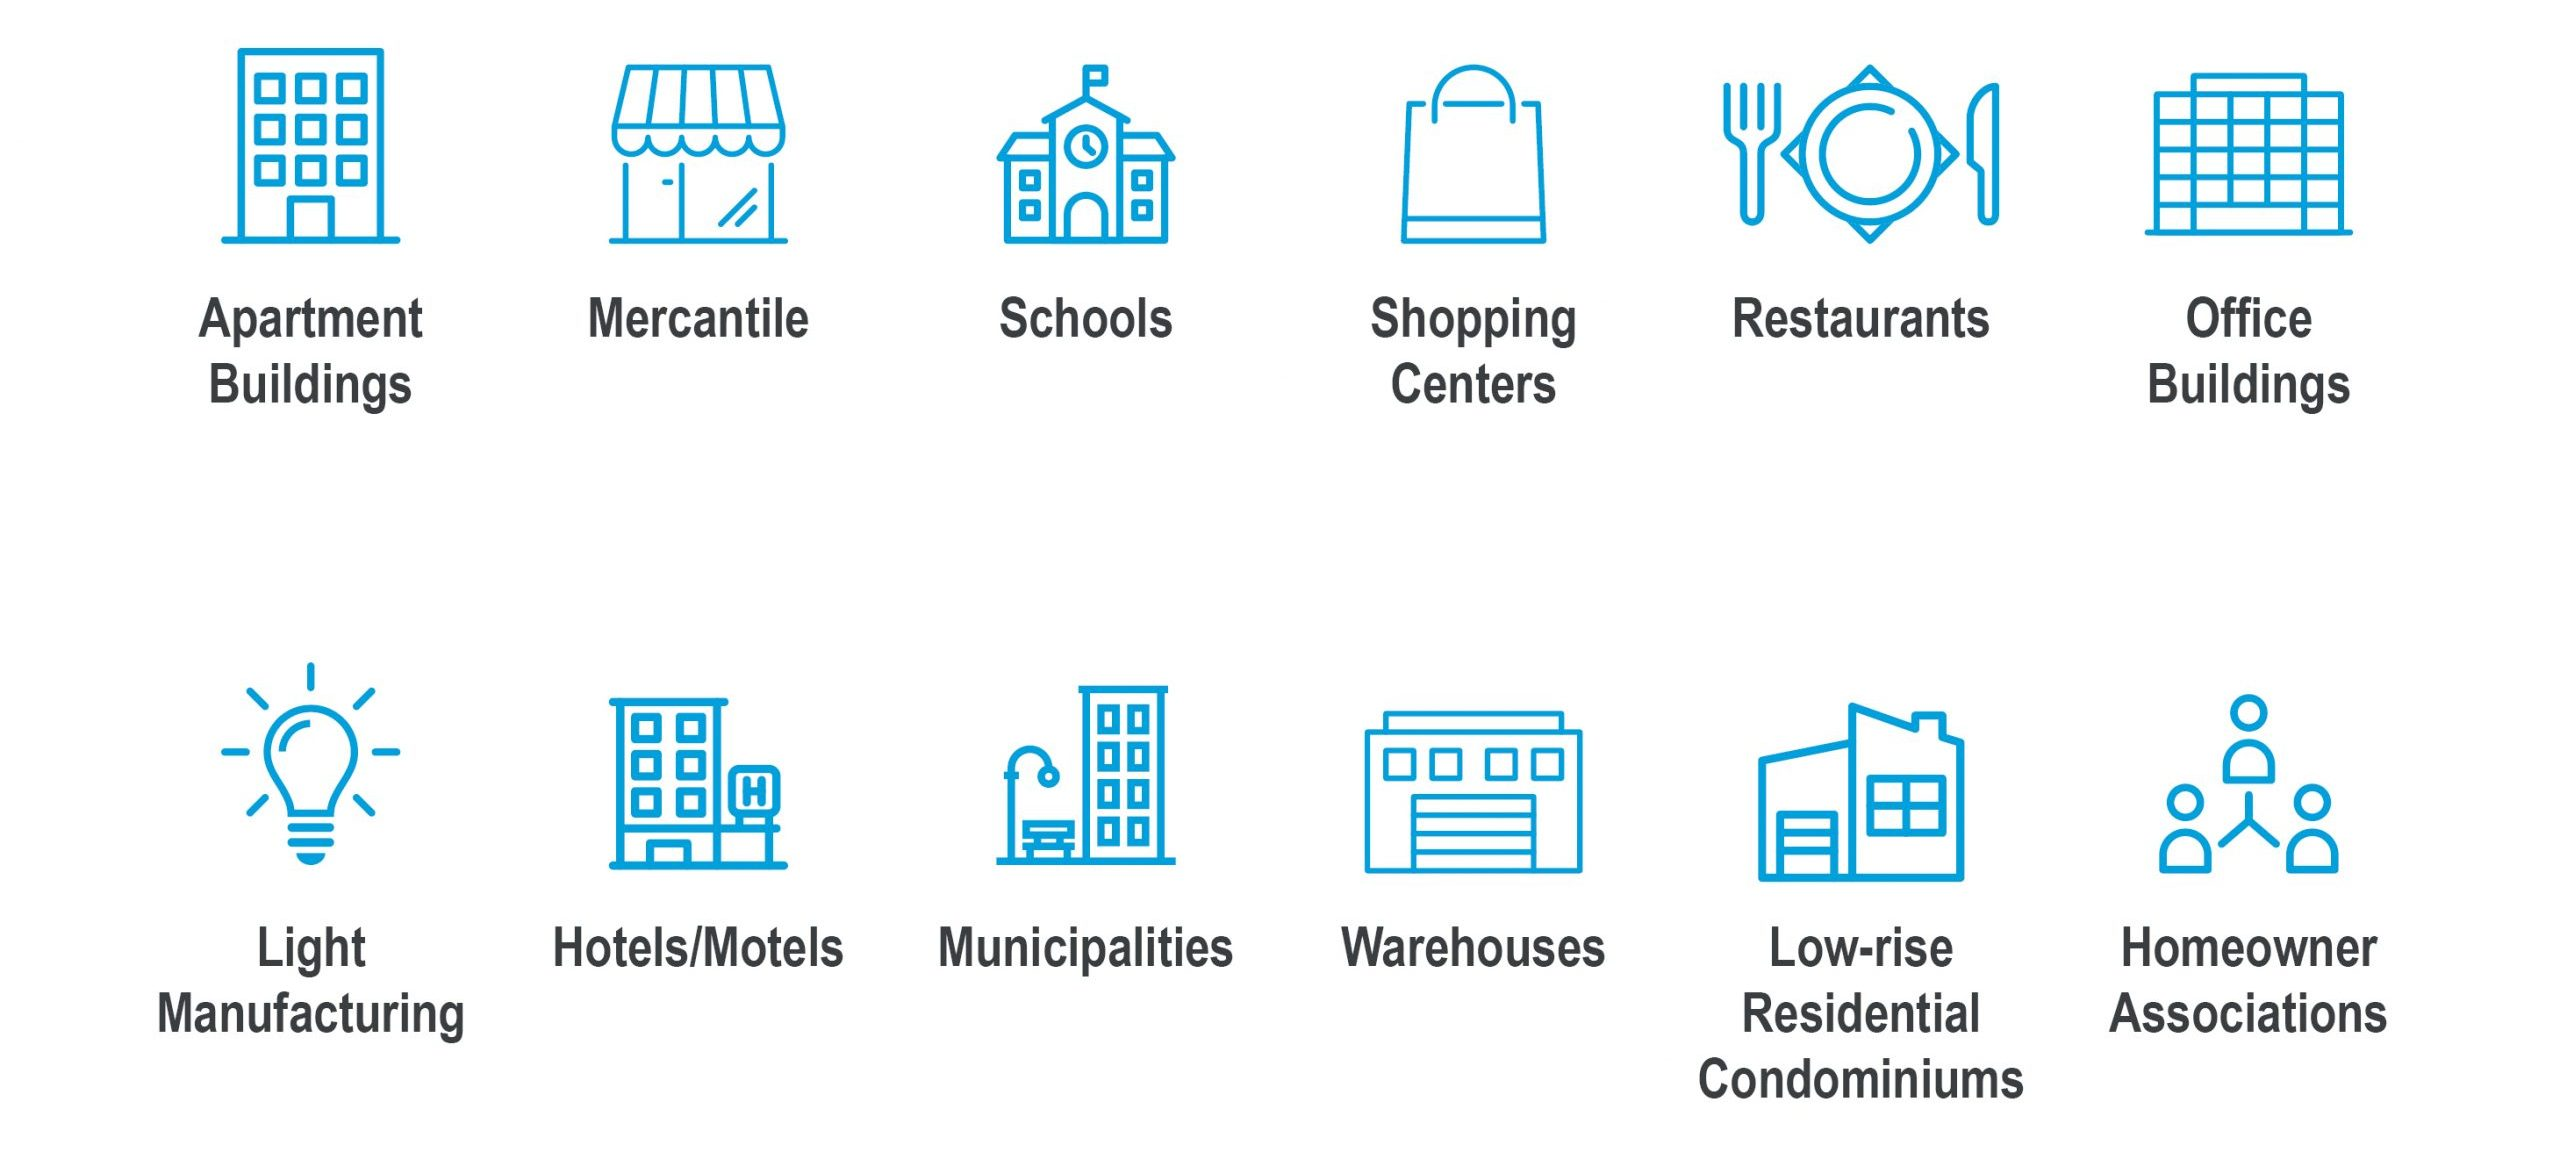 Apartment buildings, mercantile, schools, shopping centers, restaurants, office buildings, light manufacturing, hotels/motels, municipalities, warehouses, low-rise residential condominiums, and homeowner associations. Each title has blue icon to match.